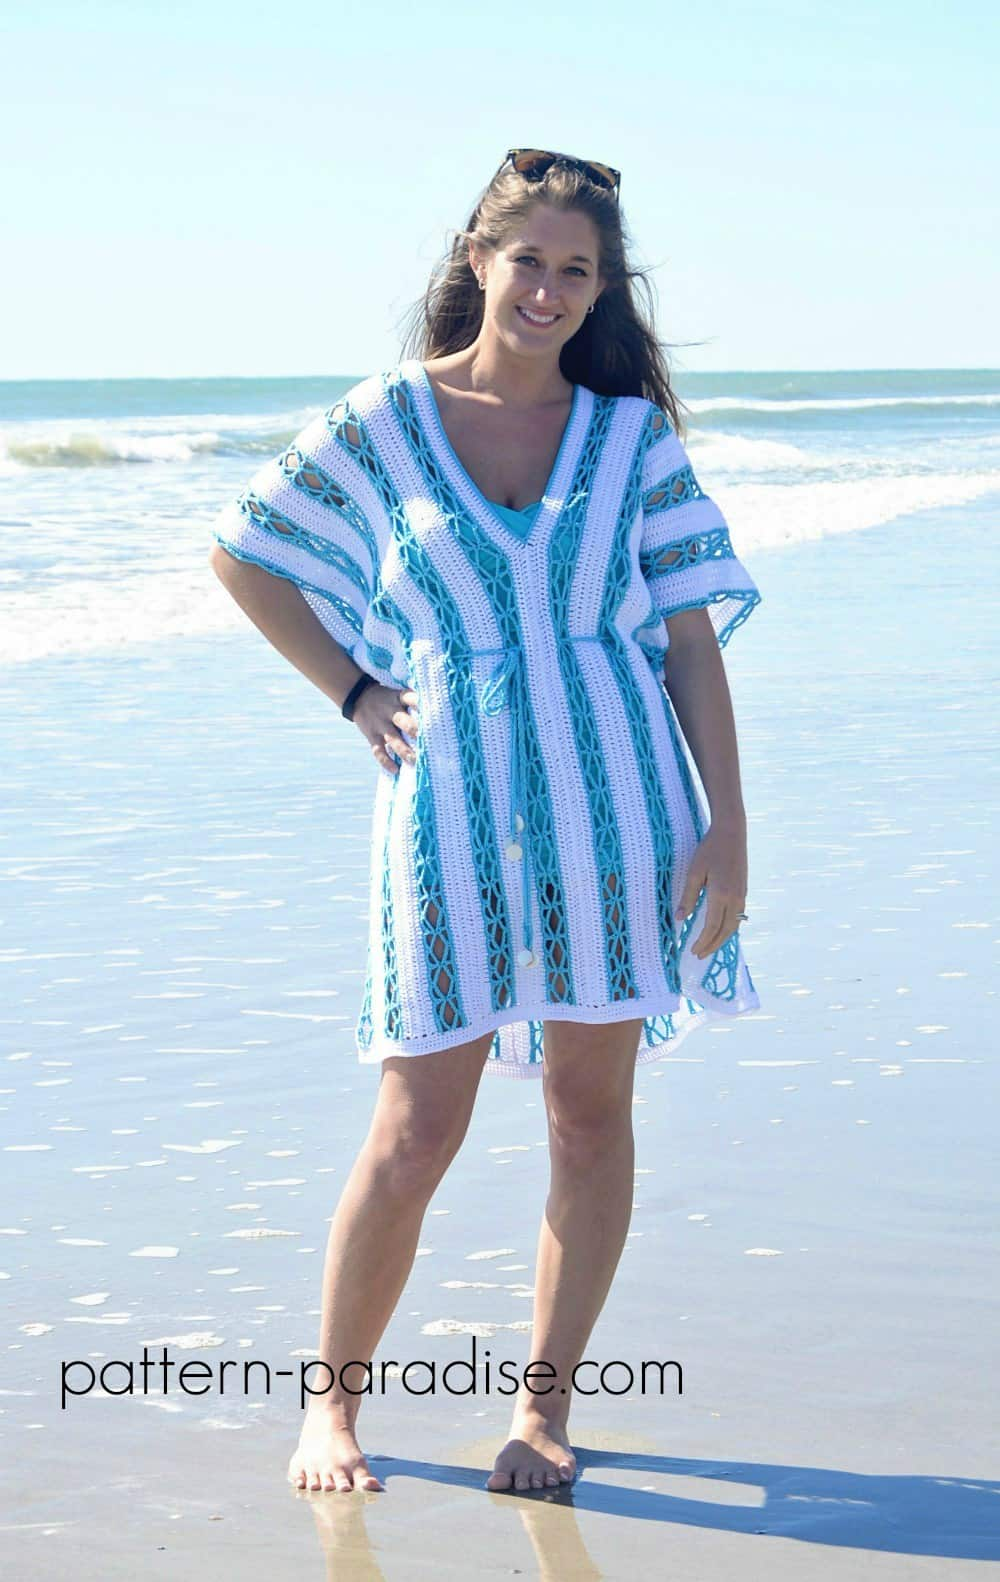 Crocheted beach tunic